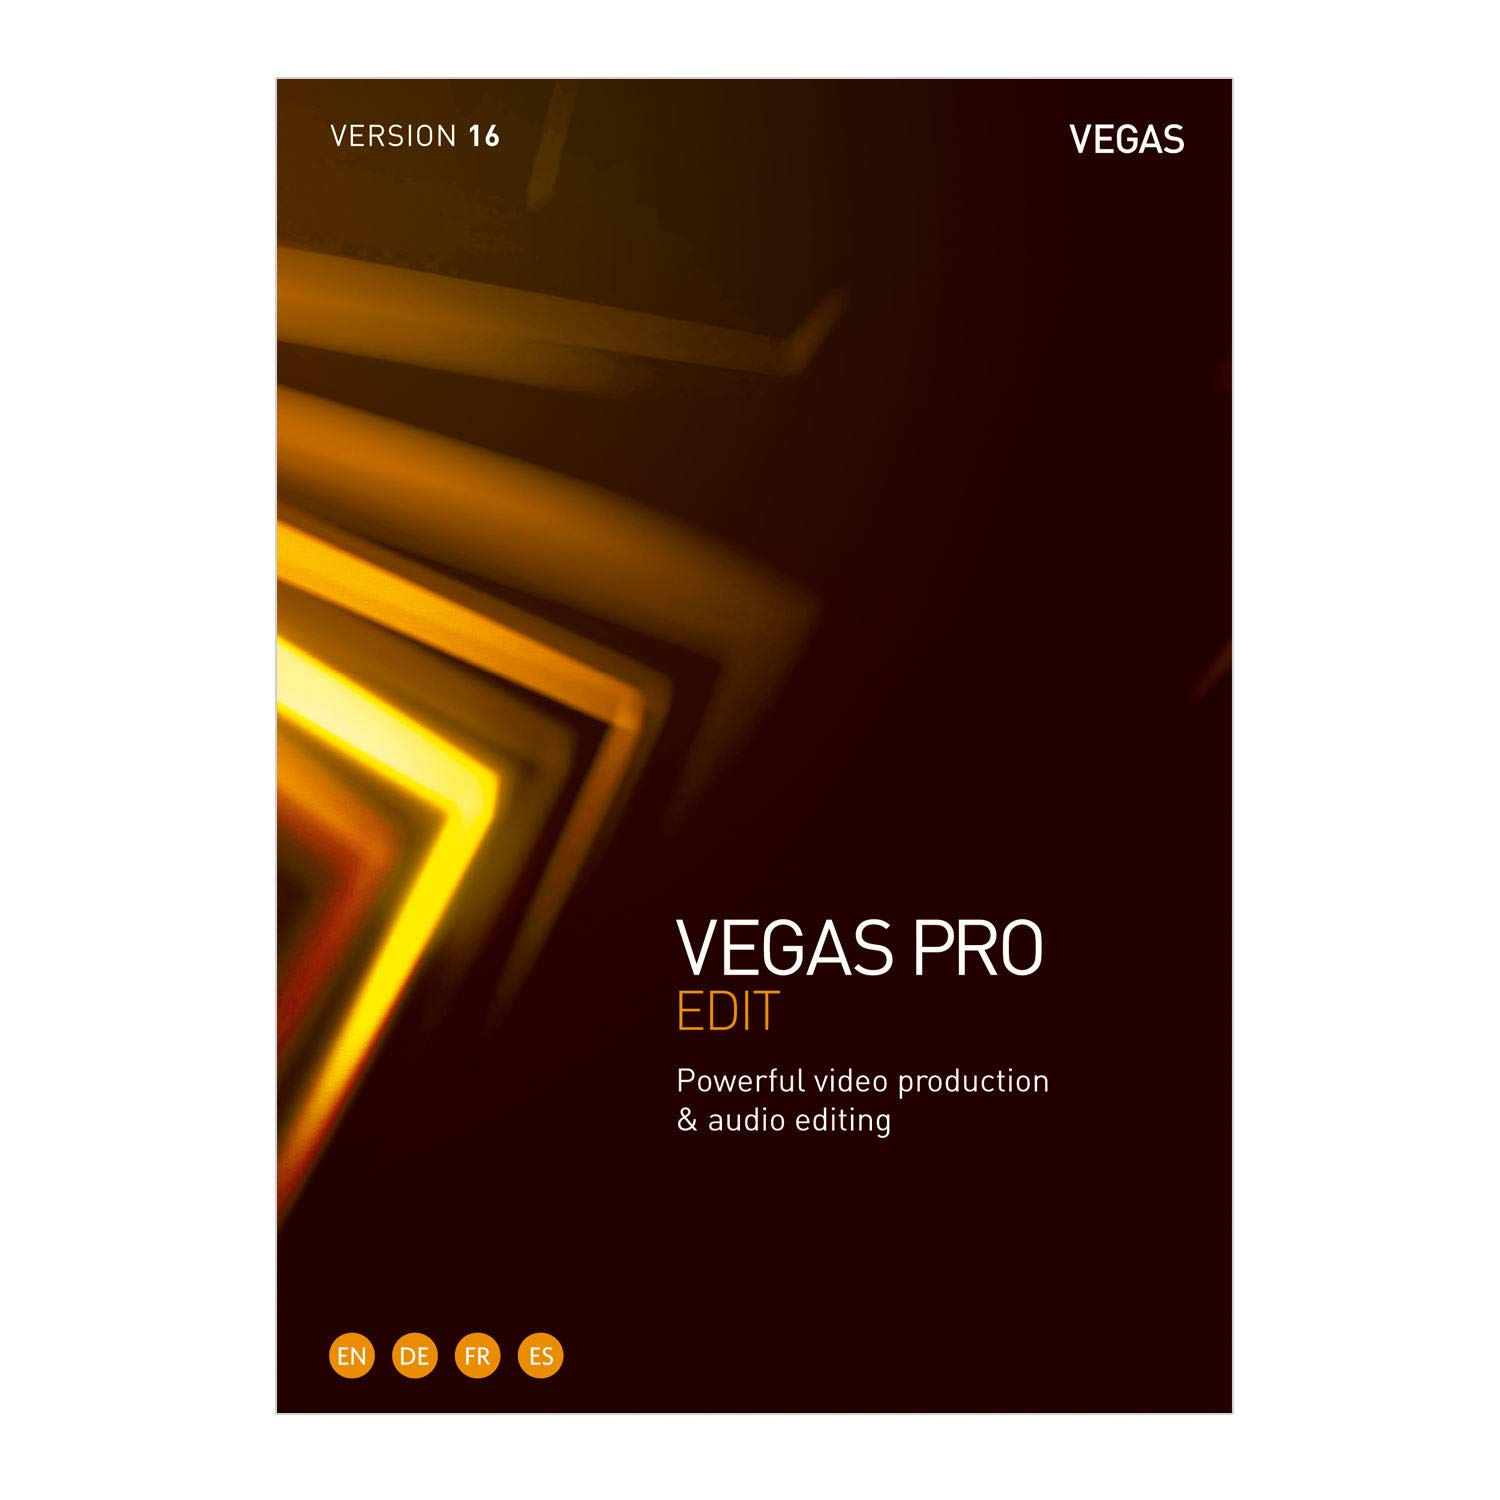 VEGAS Pro 16 Edit - Professional video and audio editing [PC Download] by VEGAS